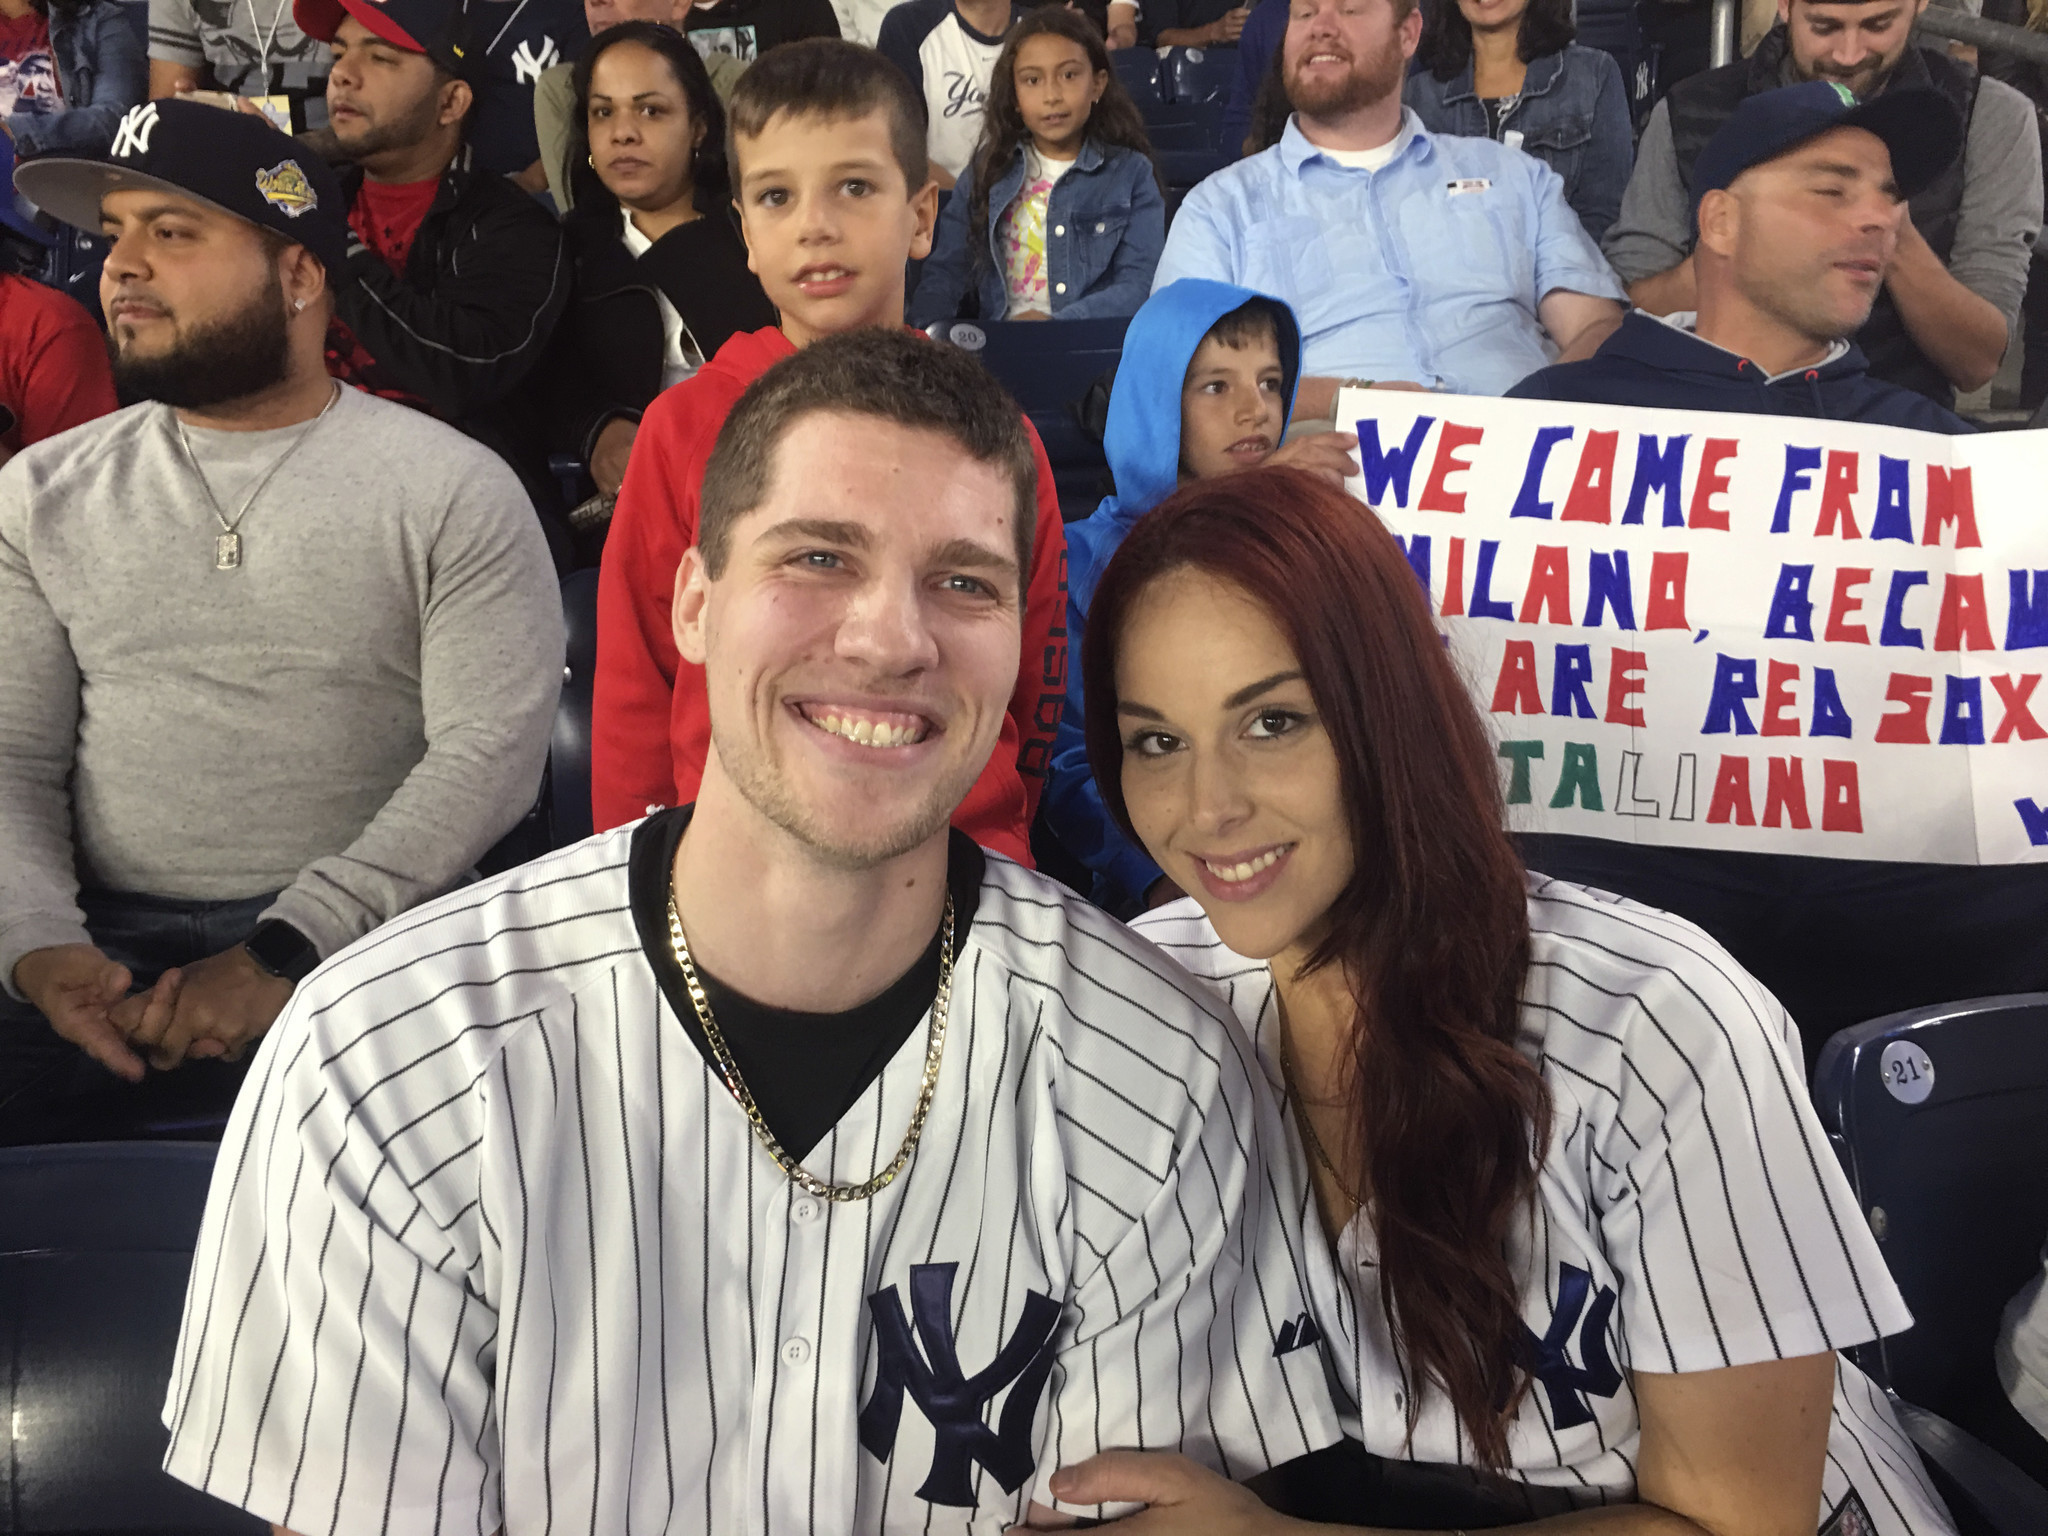 Bal-after-error-at-yankee-stadium-ring-is-found-she-says-yes-and-all-is-right-20160928